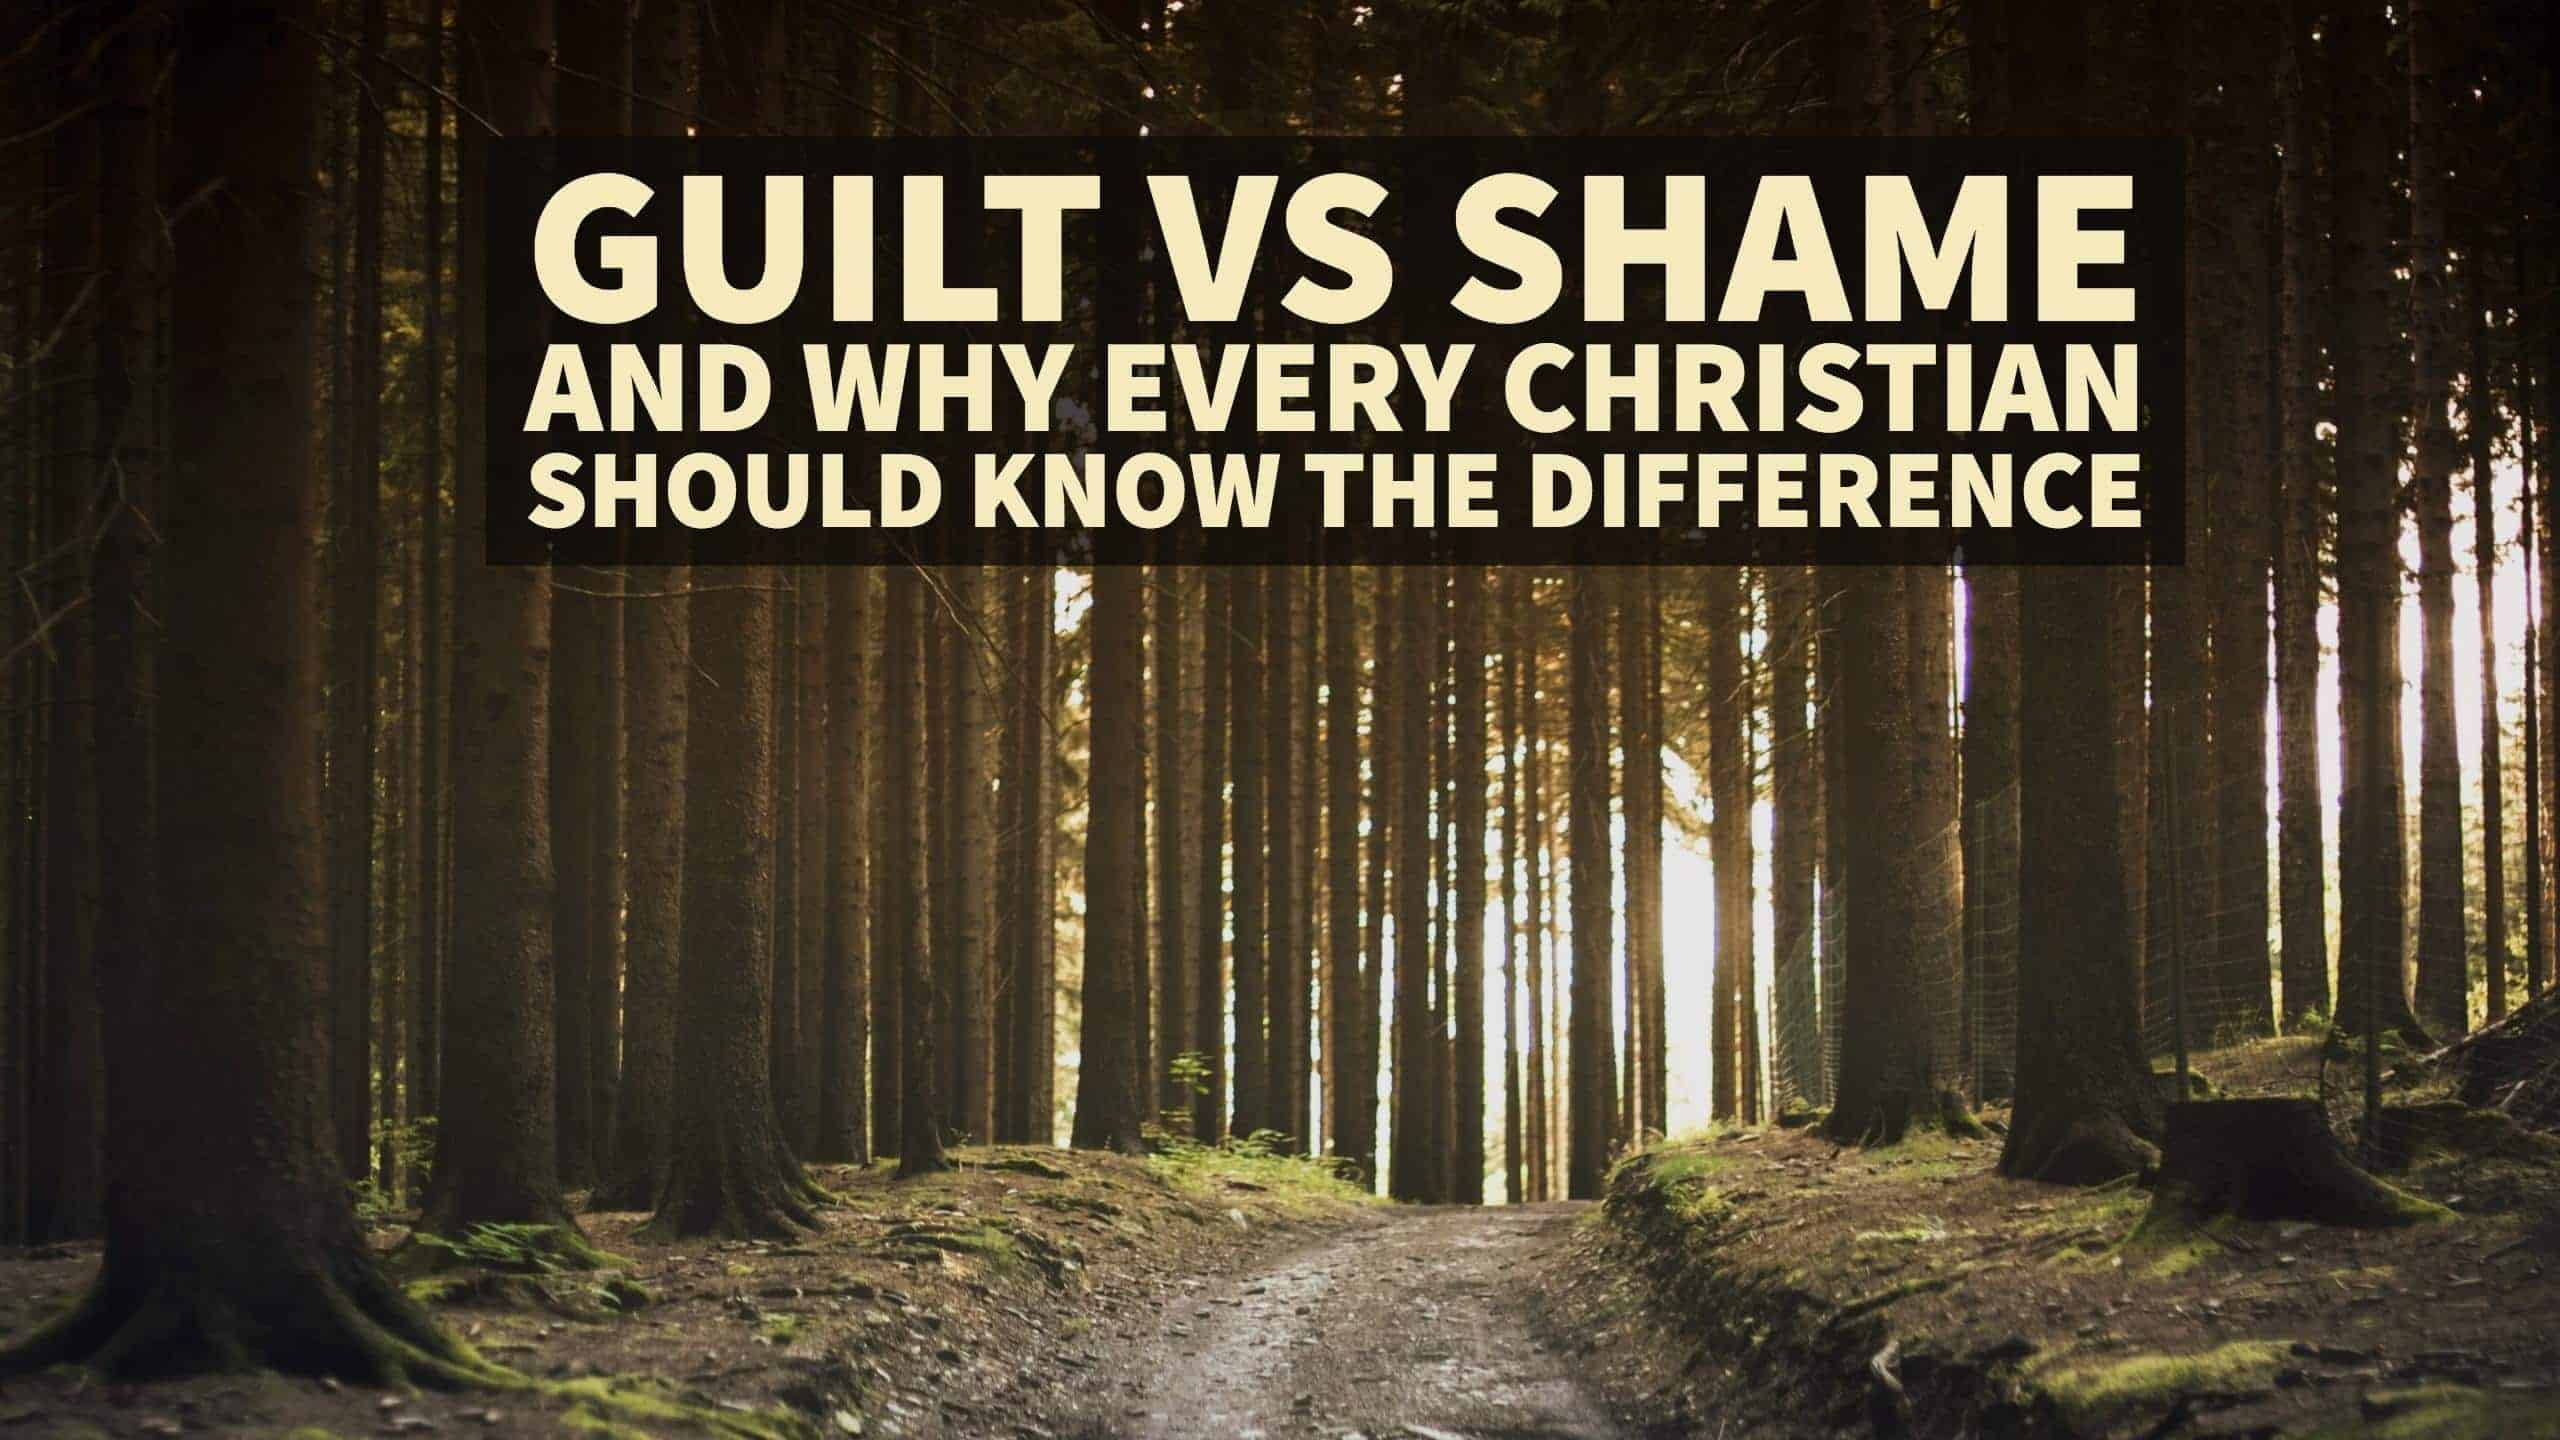 Guilt vs. Shame and why every Christian should know the difference